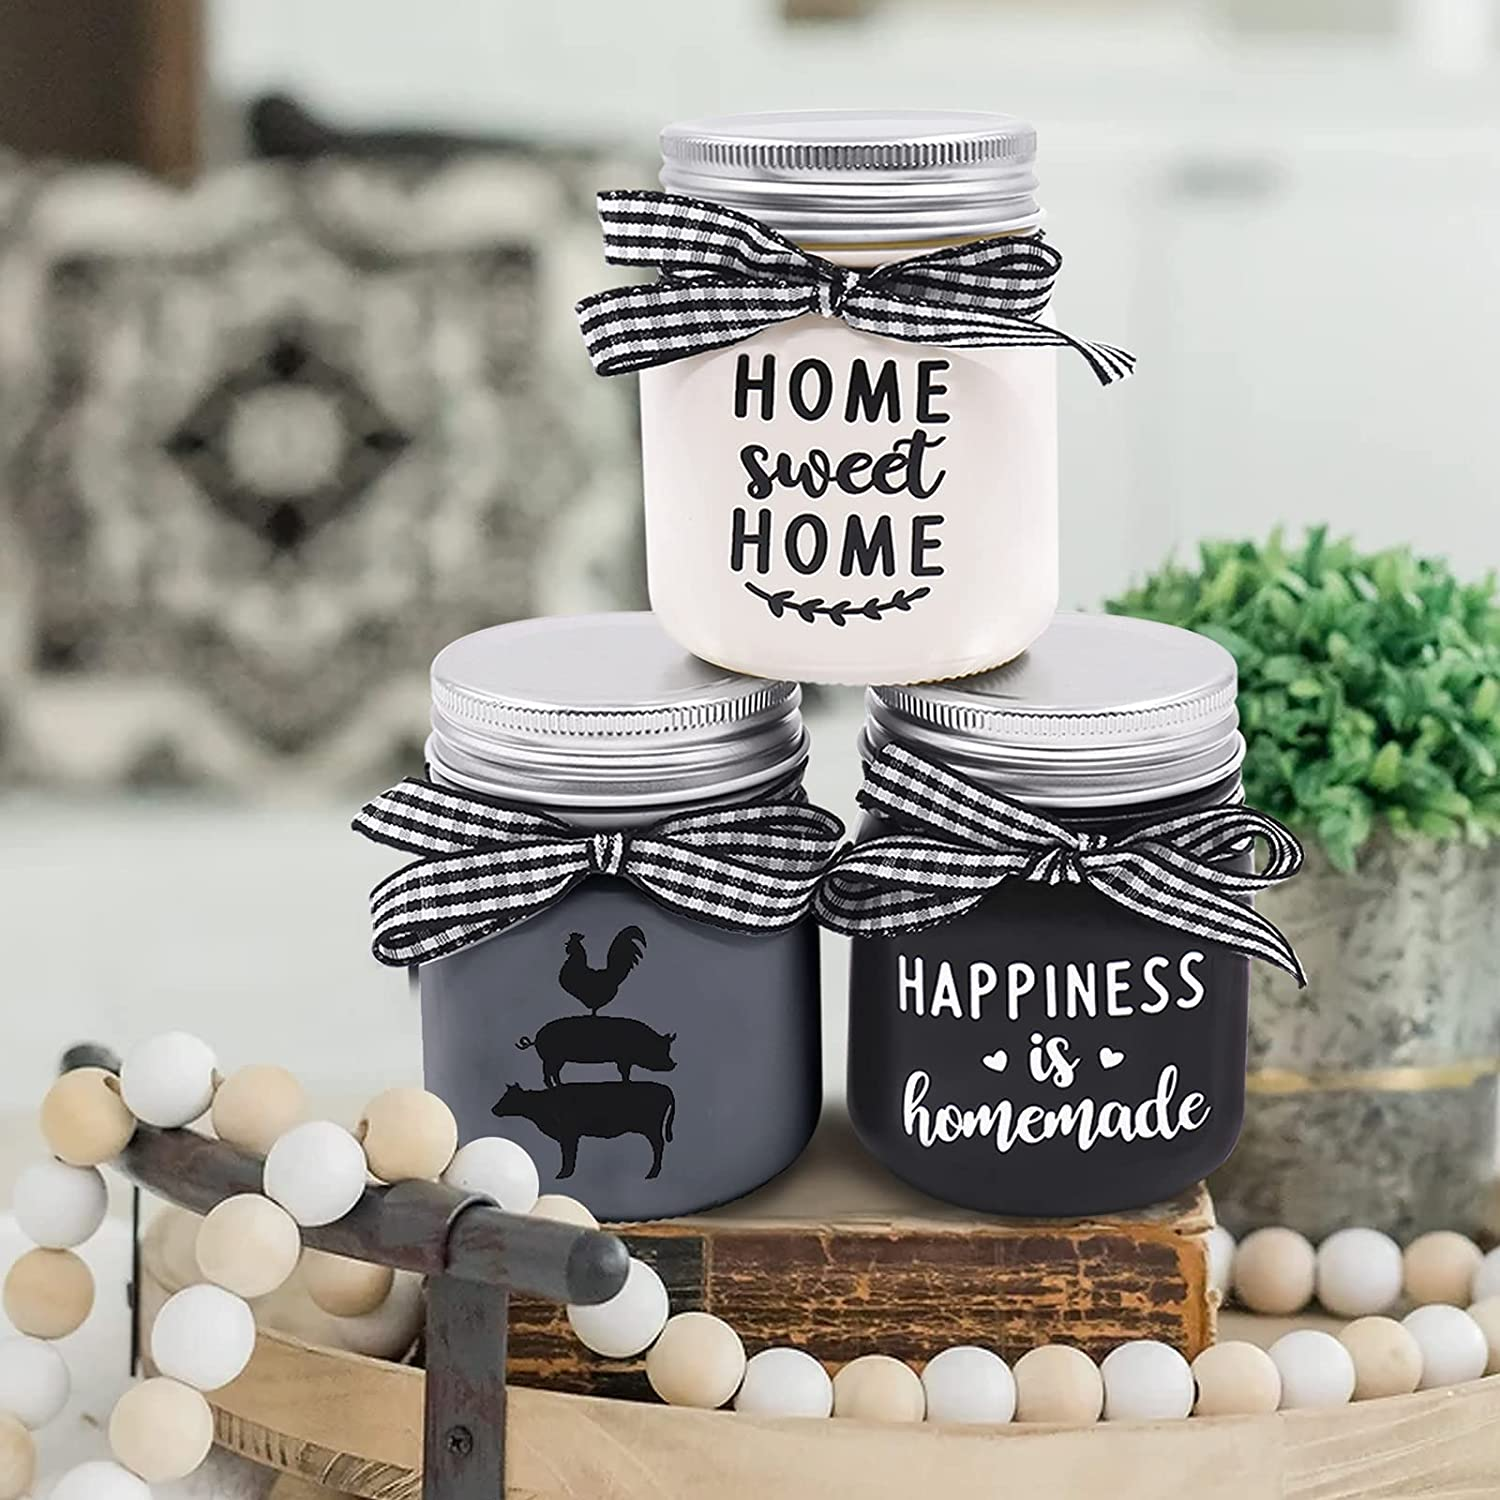 Farmhouse Mini Mason Jar Decoration Farmhouse Tiered Tray Decor Country Rustic Dining Table Decor for Kitchen Centerpieces Black&White Home Sweet Home Sign Happiness Homemade Farm Animal Set of 3